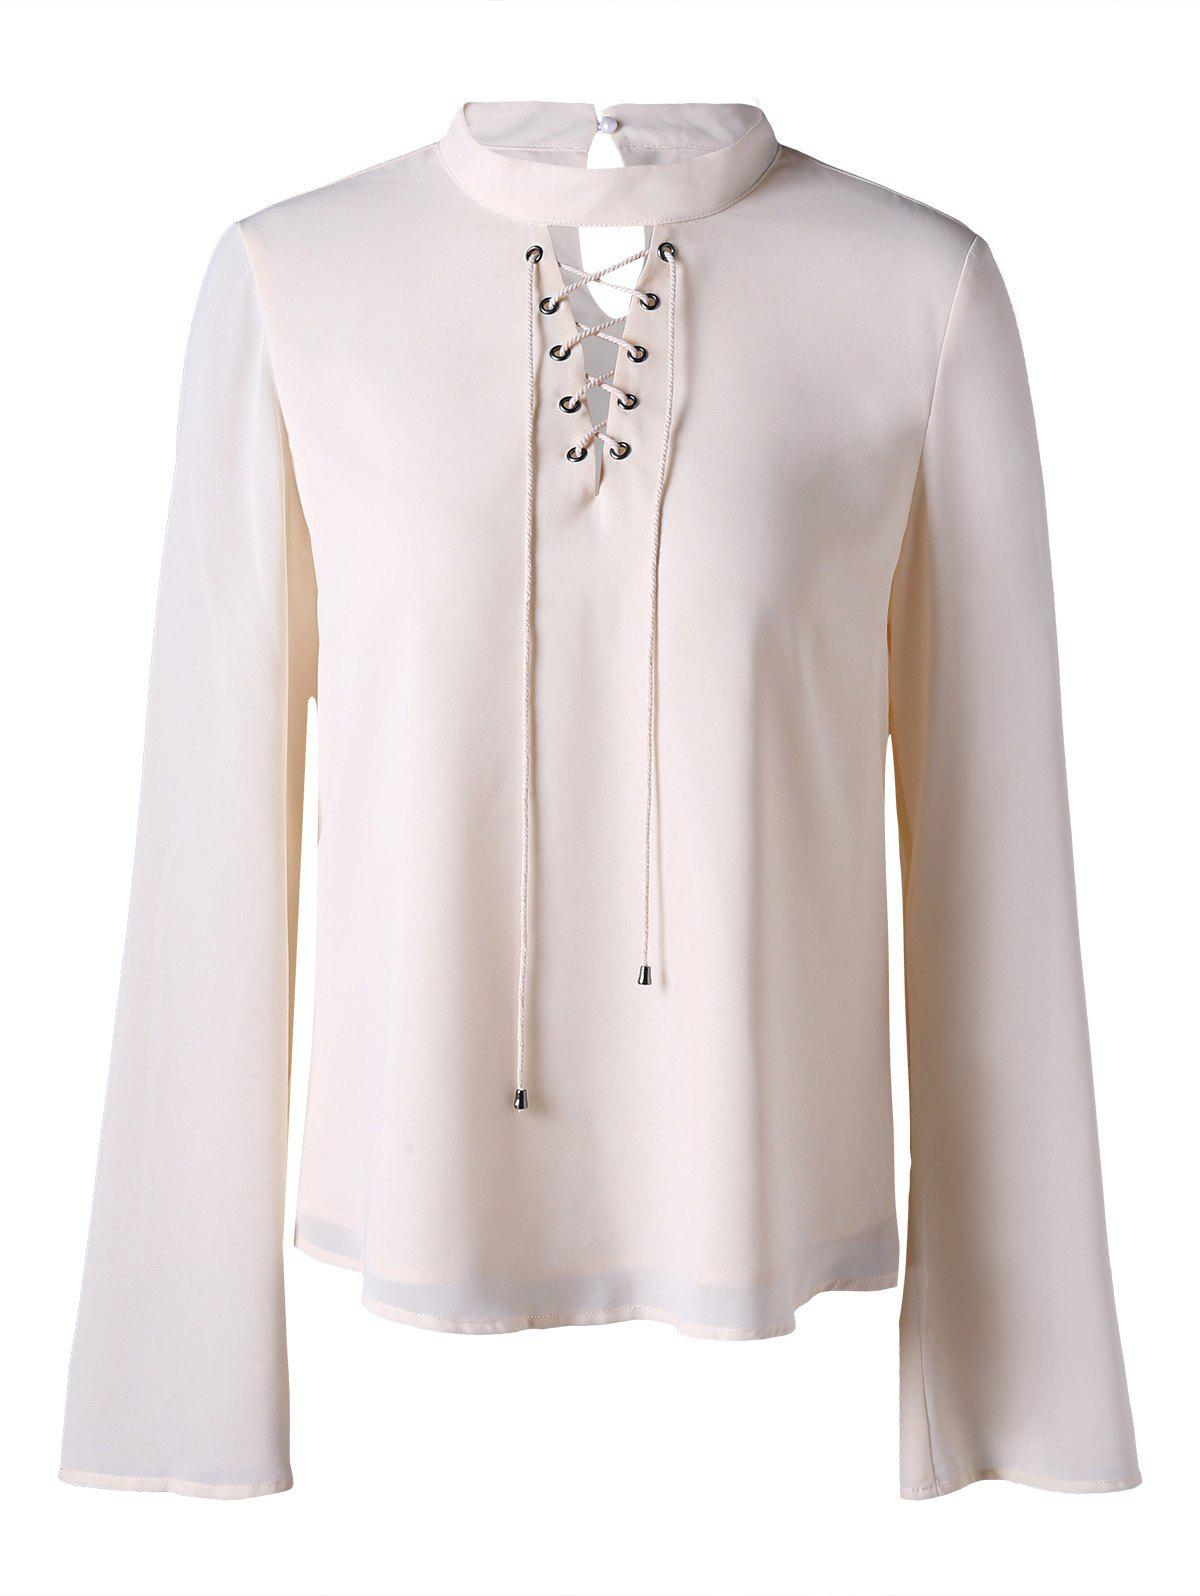 Mock Neck Lace Up Blouse - OFF WHITE L